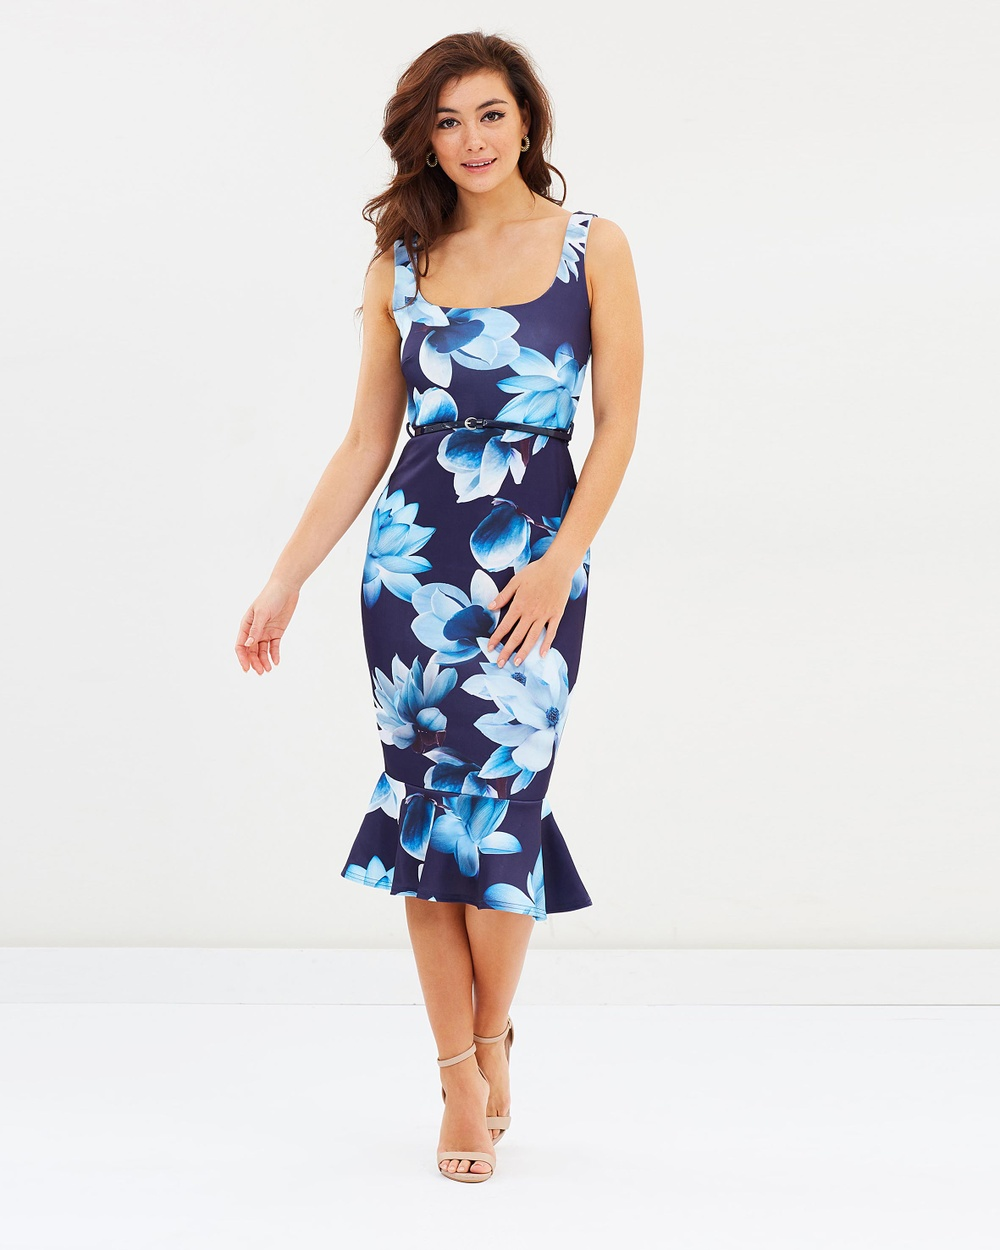 Lipsy Square Neck Belted Body Con Floral Dress Bodycon Dresses Navy Square Neck Belted Body-Con Floral Dress